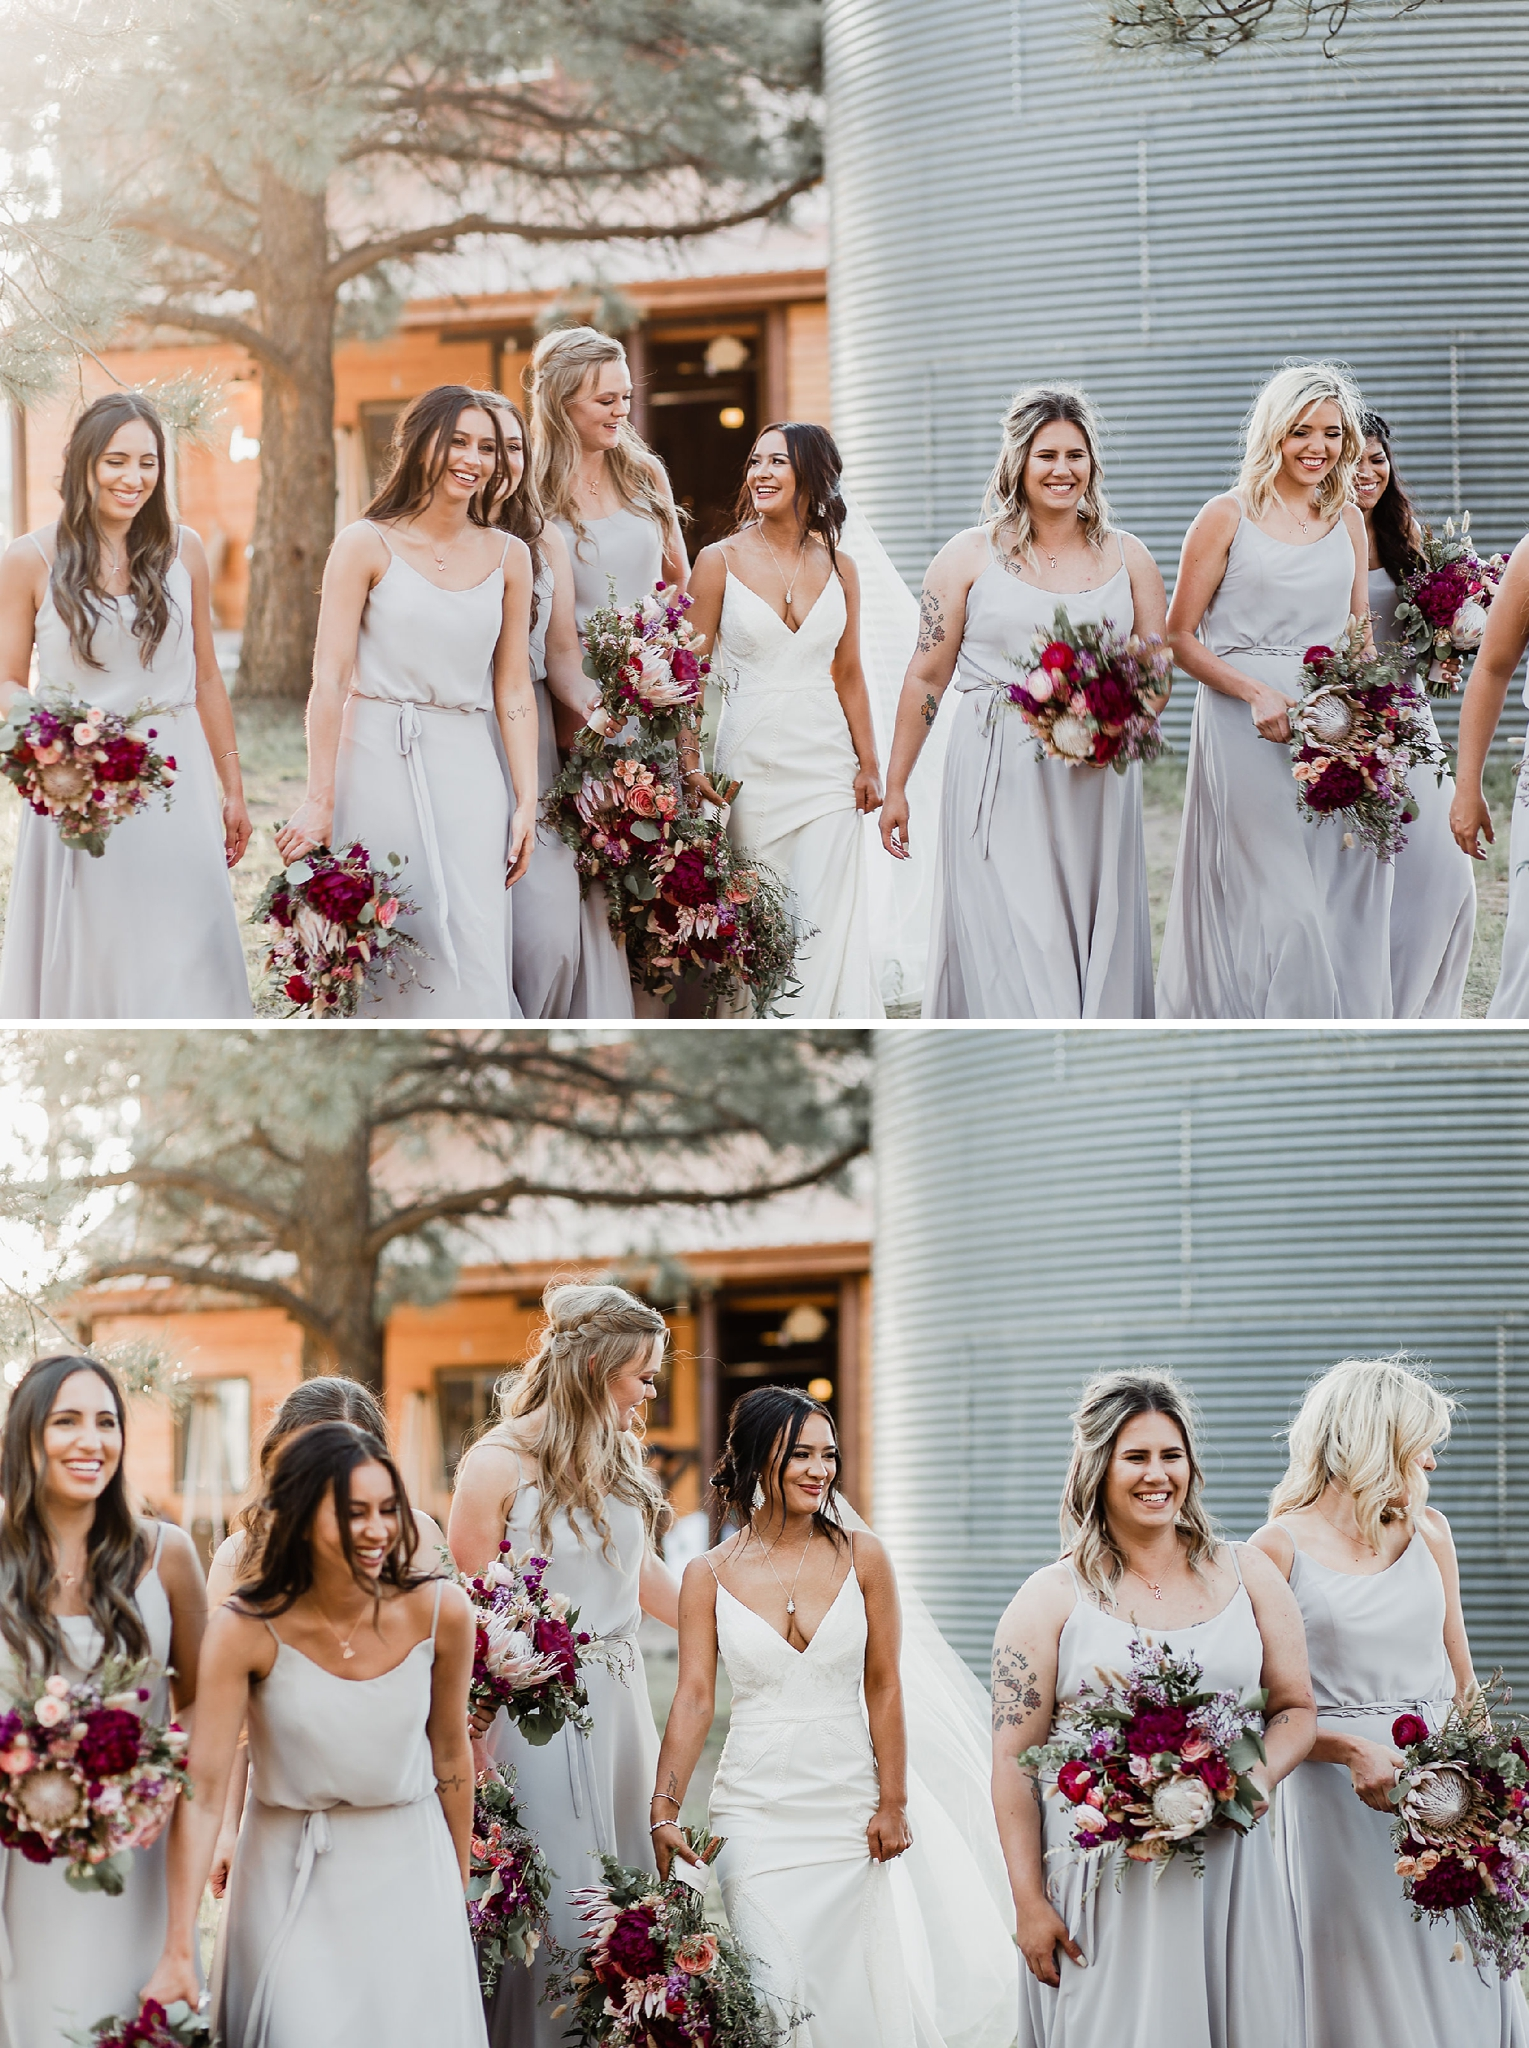 Alicia+lucia+photography+-+albuquerque+wedding+photographer+-+santa+fe+wedding+photography+-+new+mexico+wedding+photographer+-+new+mexico+wedding+-+new+mexico+wedding+-+colorado+wedding+-+bridesmaids+-+bridesmaid+style_0006.jpg